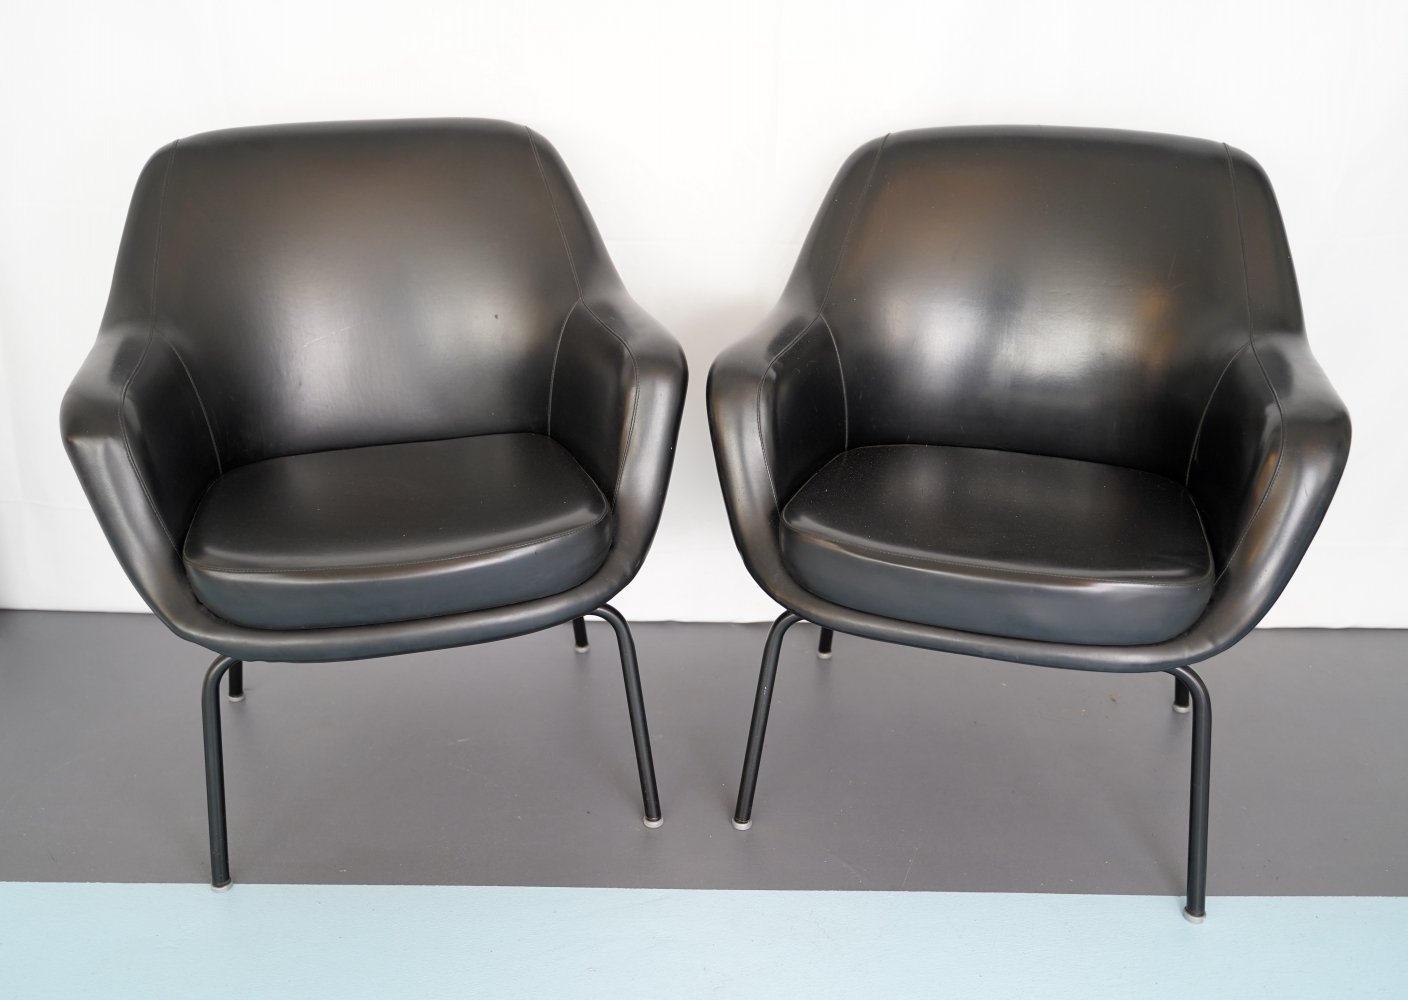 Pair of Olli Mannermaa Armchairs by Cassina, Italy 1960s